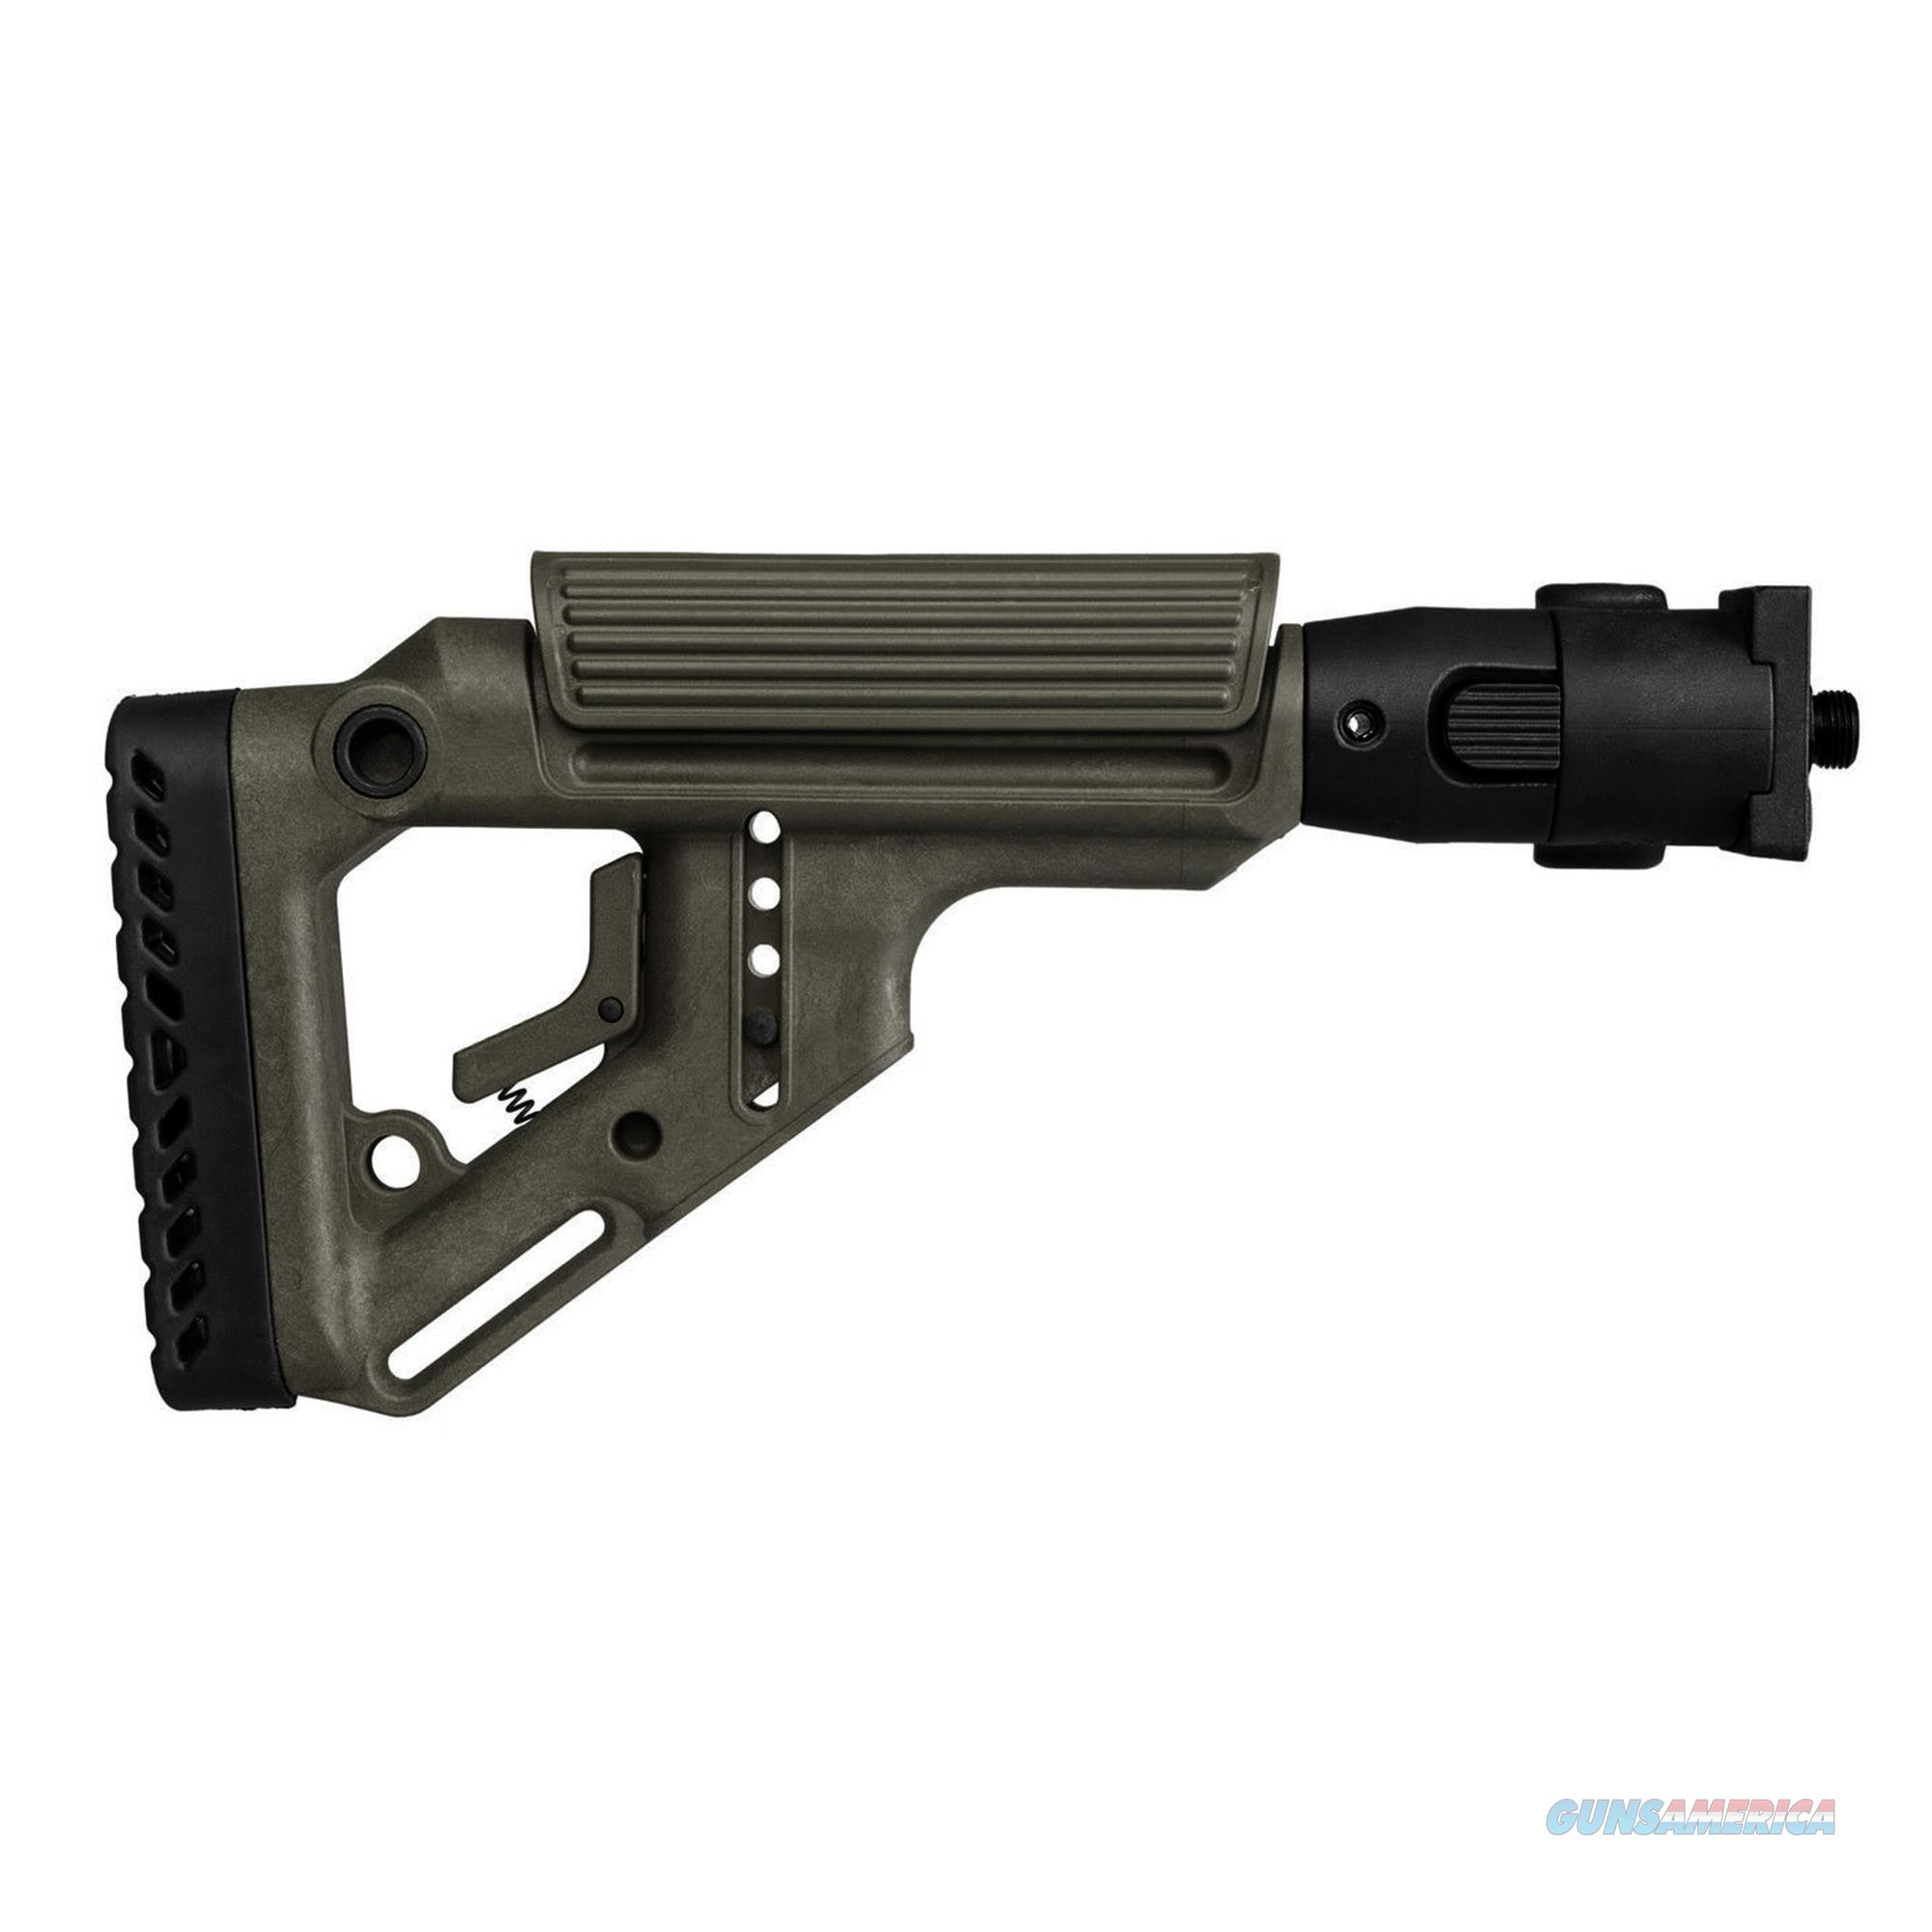 Mako Group Tactical Folding Buttstock UAS-VZ-OD  Non-Guns > Gunstocks, Grips & Wood